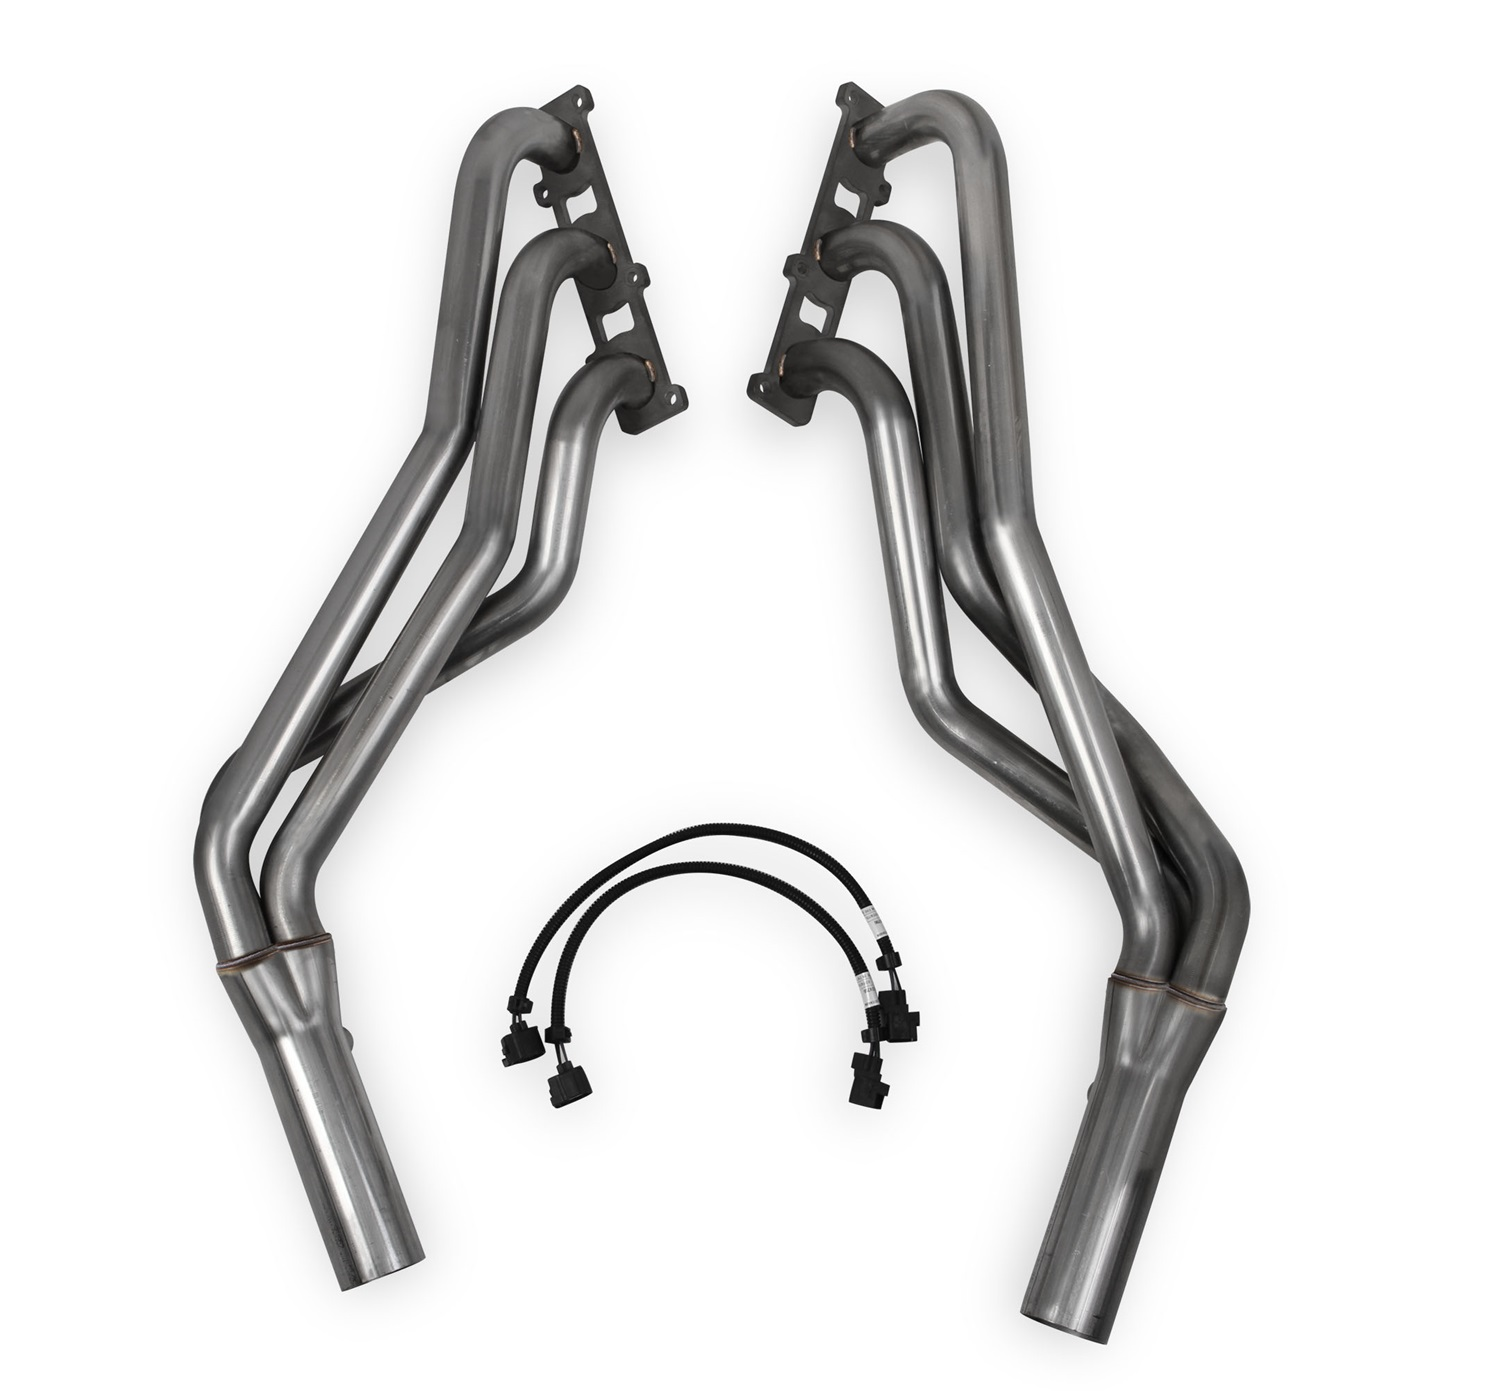 Hooker Headers 70103306-RHKR Blackheart Long Tube Headers; 1.625 in. x 2.5 in. Primary Tubing; Incl. 02 Sensor Extensions/Hardware; 304 Stainless Steel; Natural Finish;